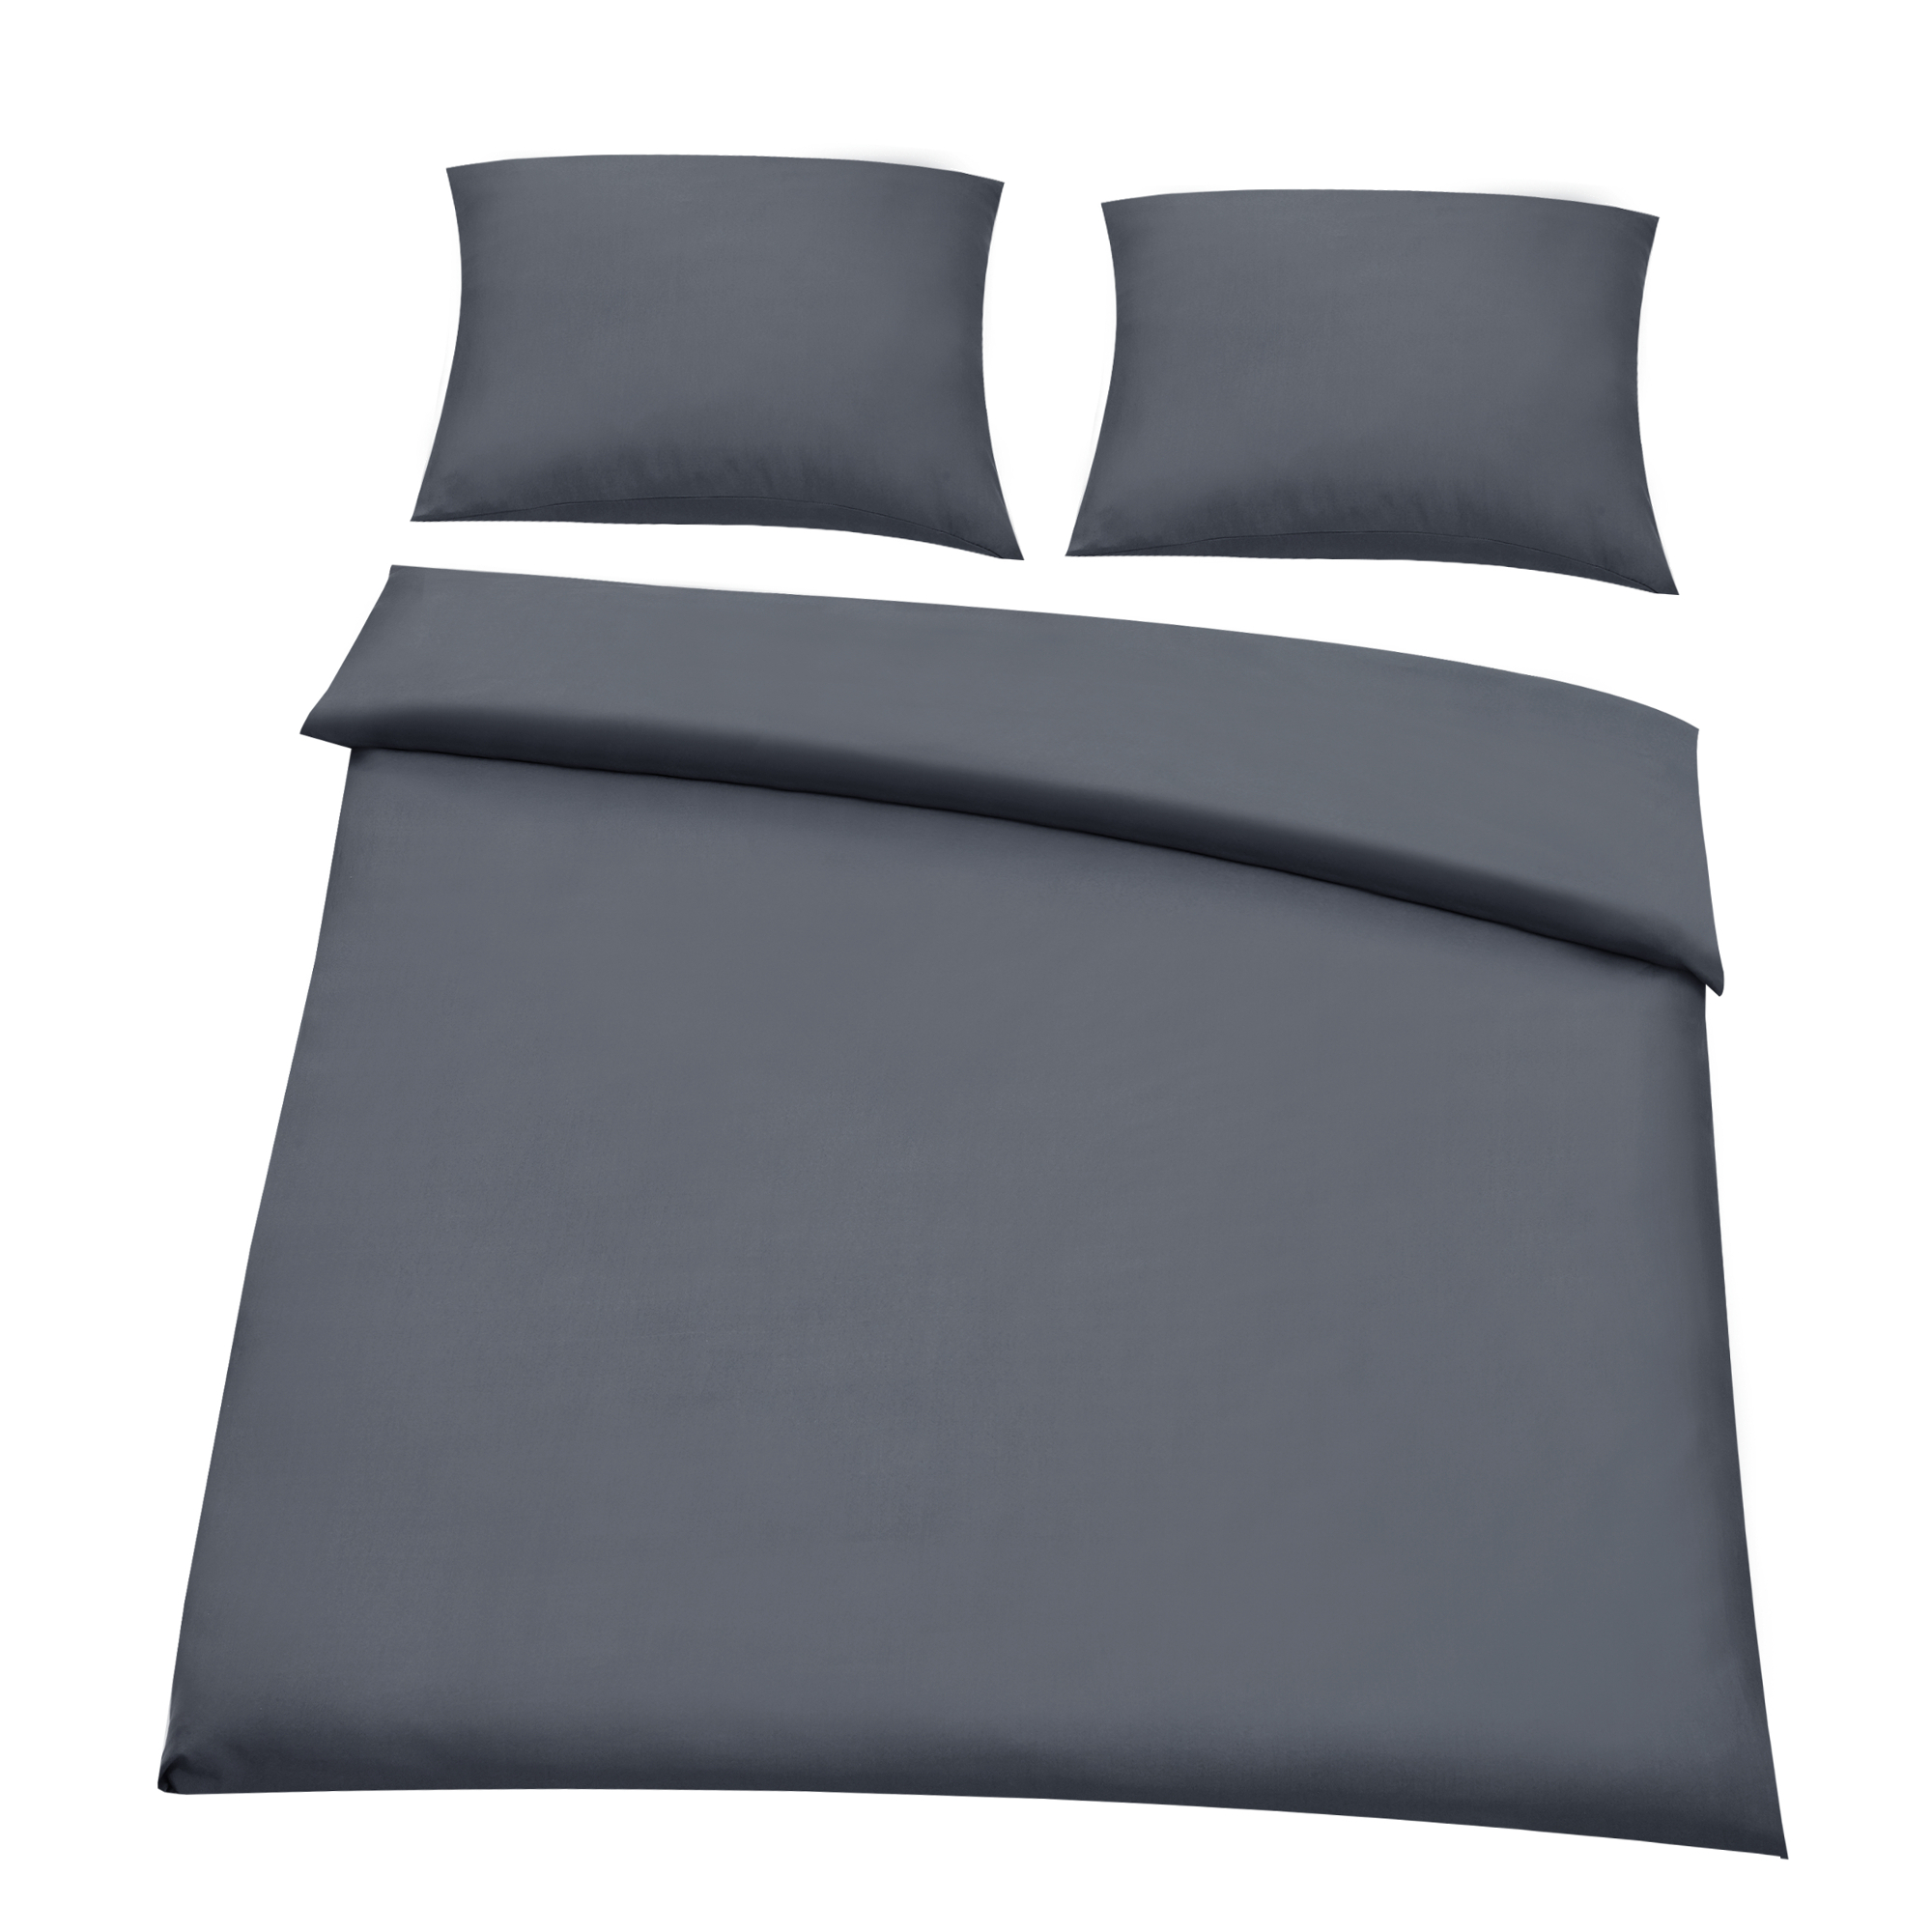 neuhaus drap housse 180 200 x 200 220 cm linge de lit 200 x 200 gris fonc ebay. Black Bedroom Furniture Sets. Home Design Ideas